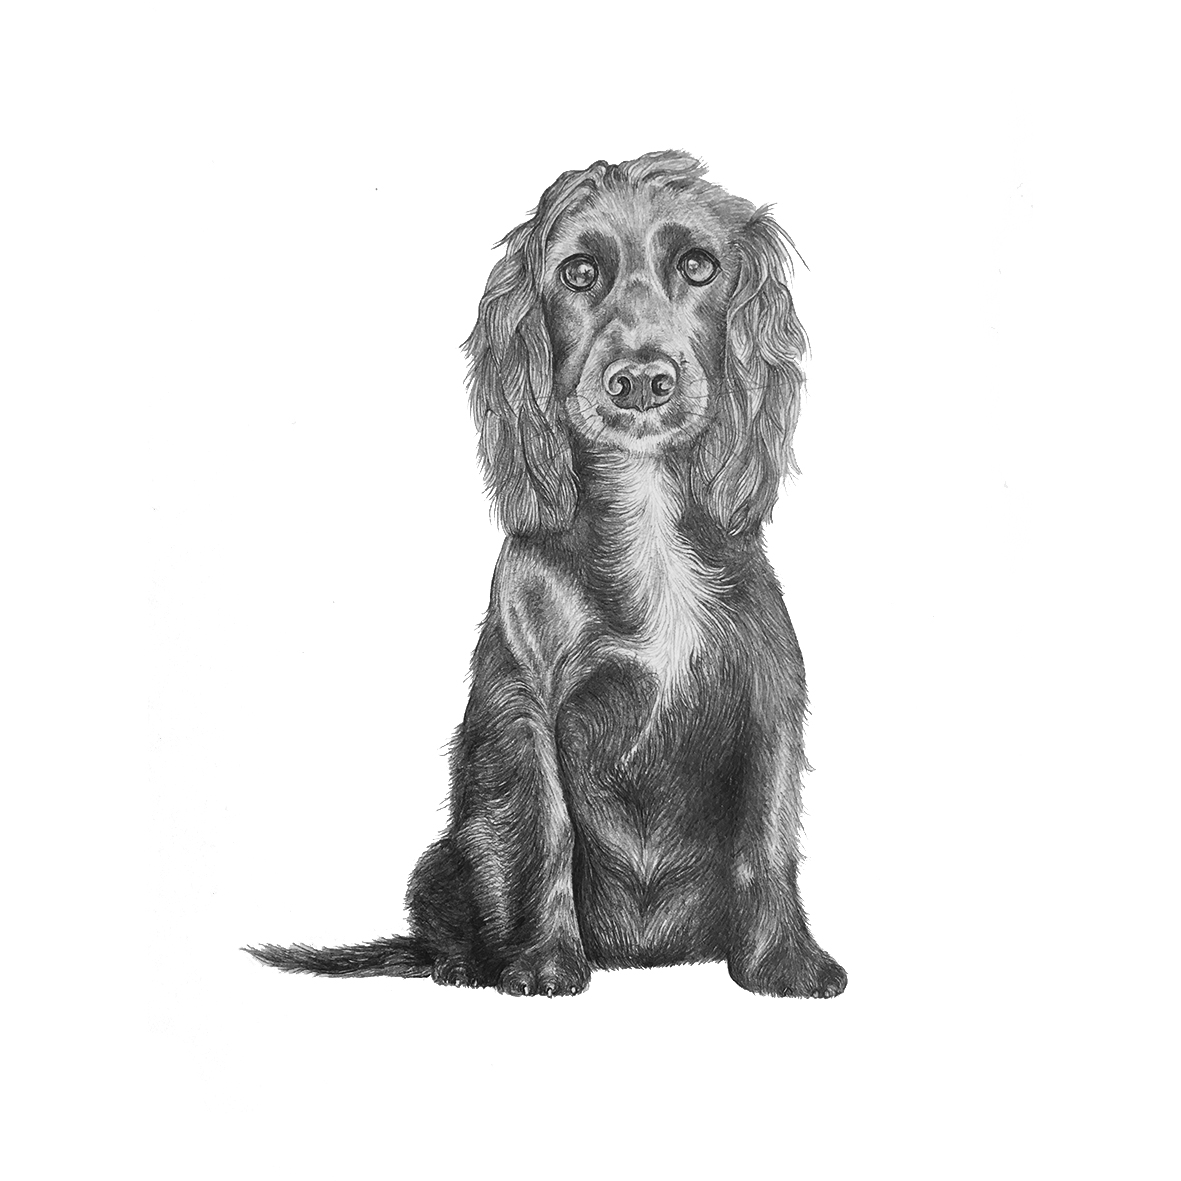 Pet portrait drawings from £45